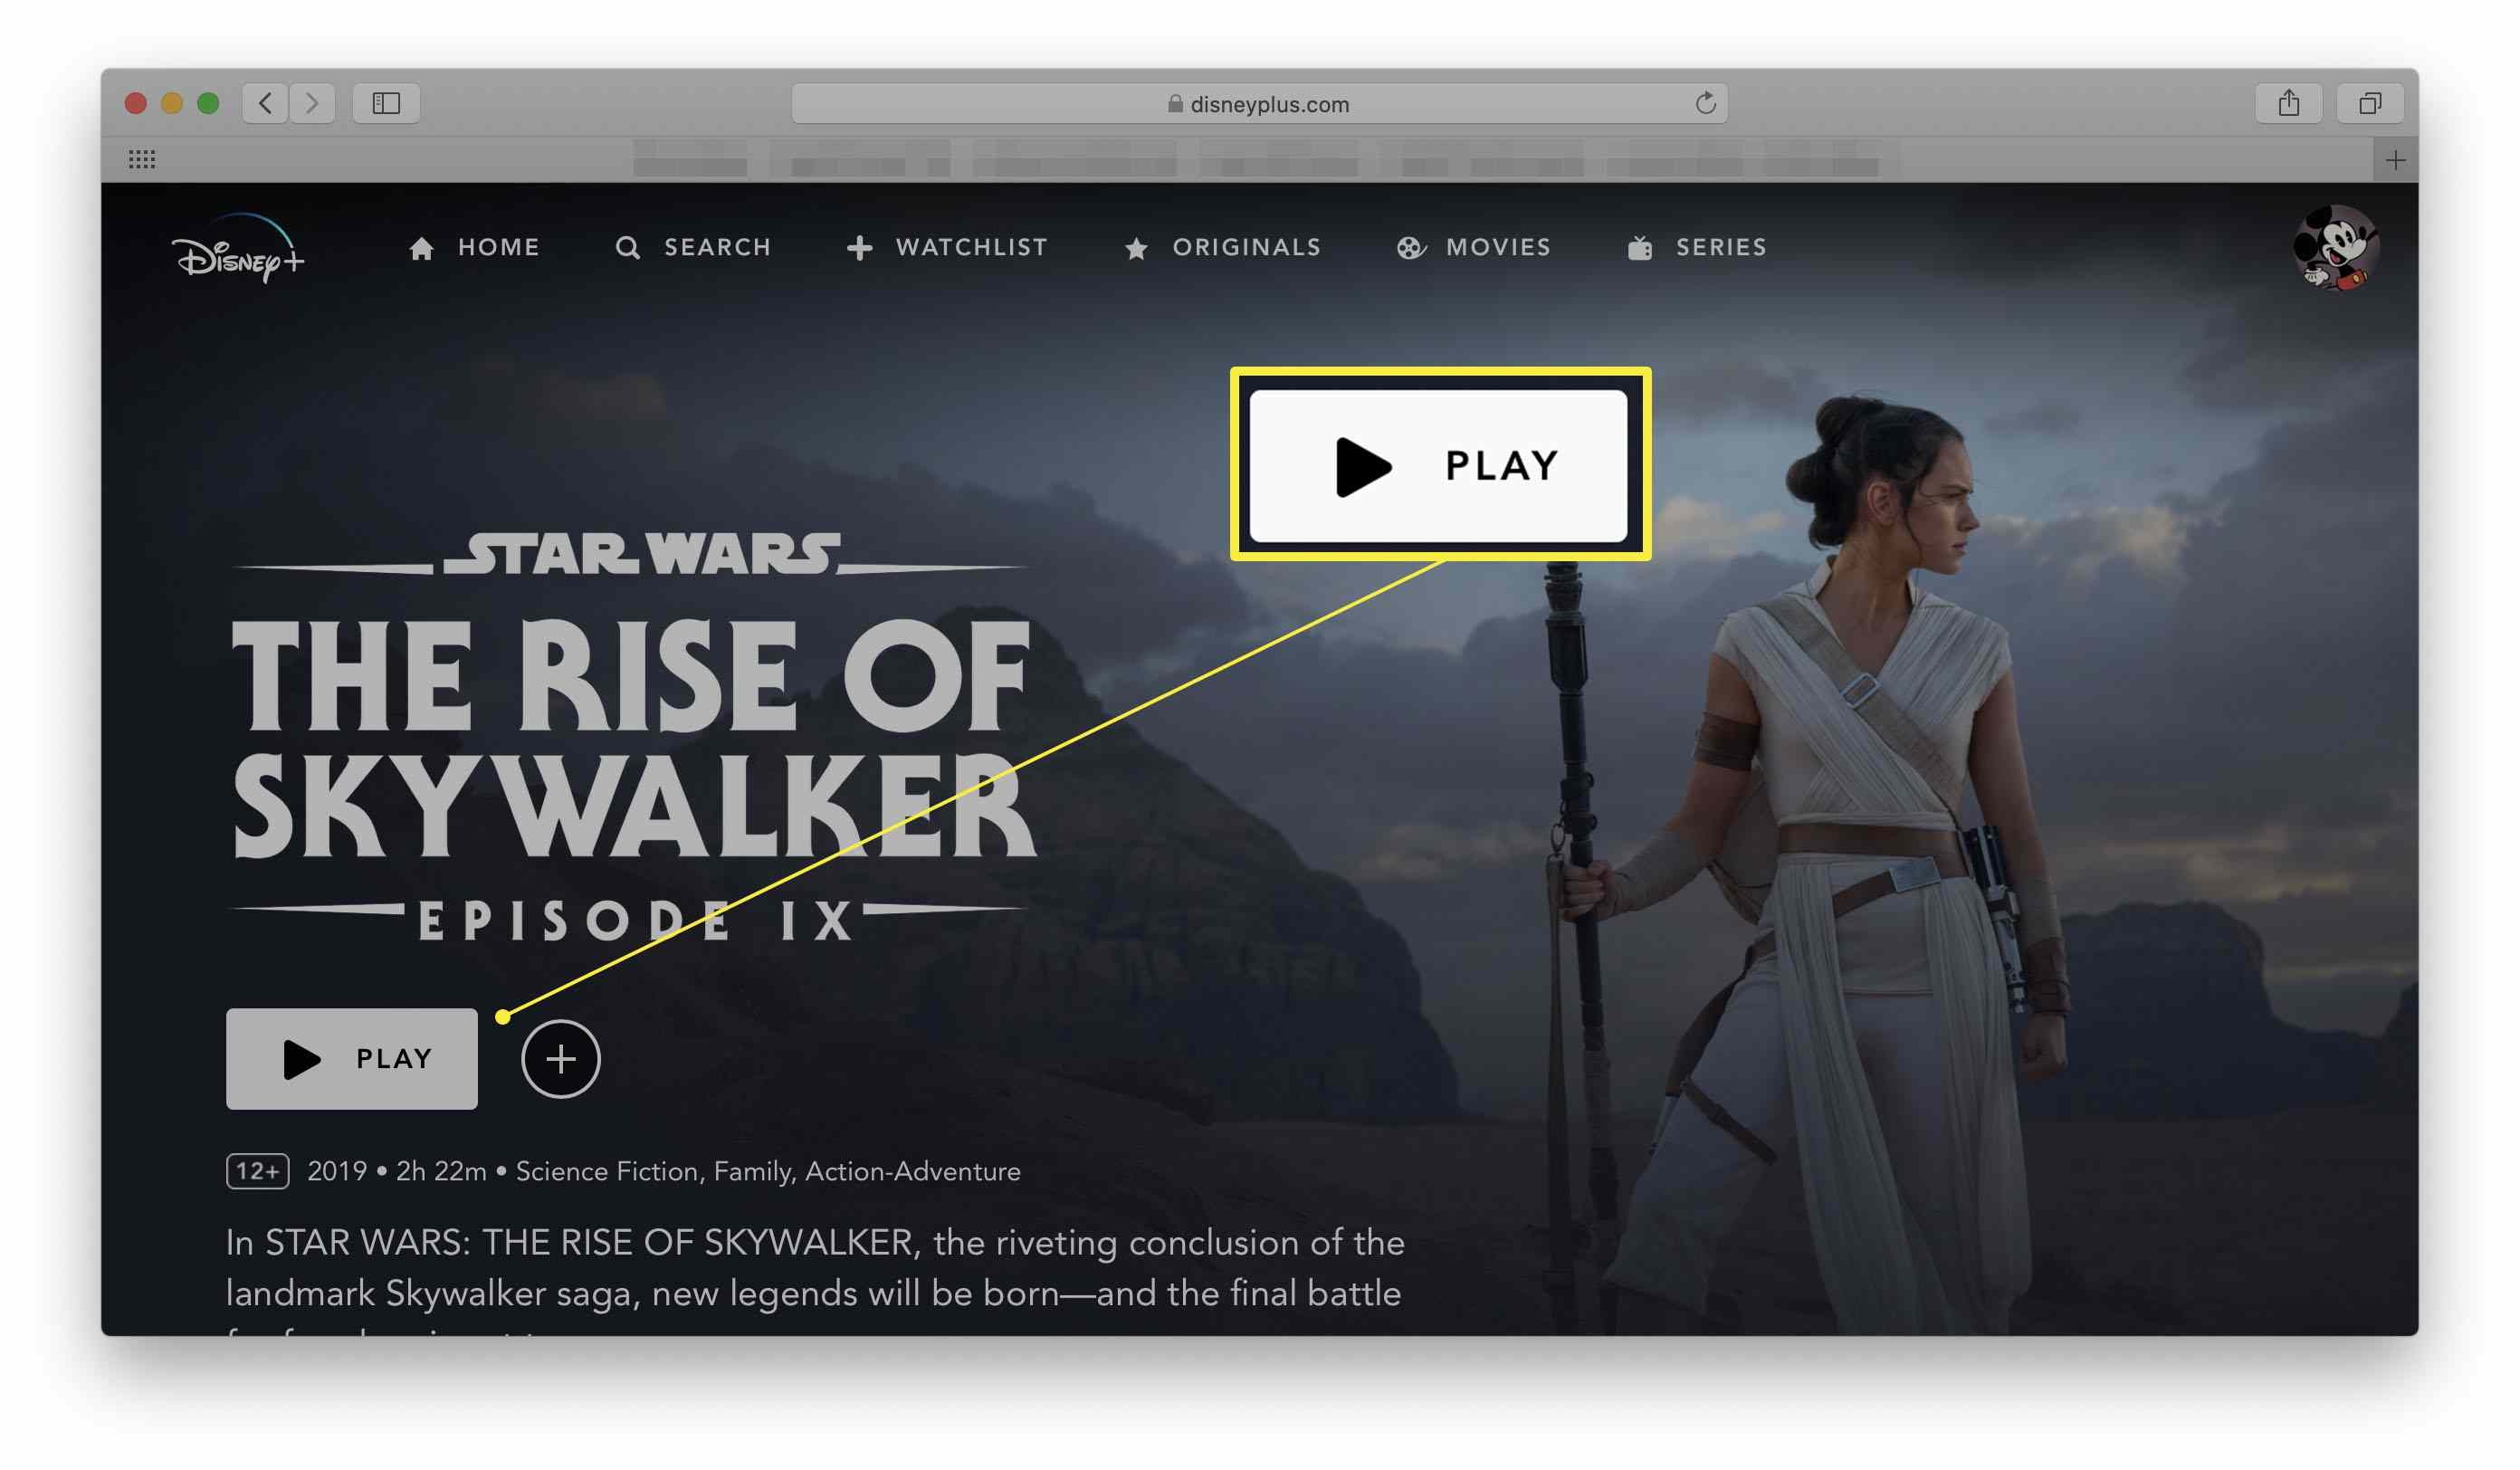 Disney+ website with the play button highlighted on a movie (Star Wars: The Rise of Skywalker)